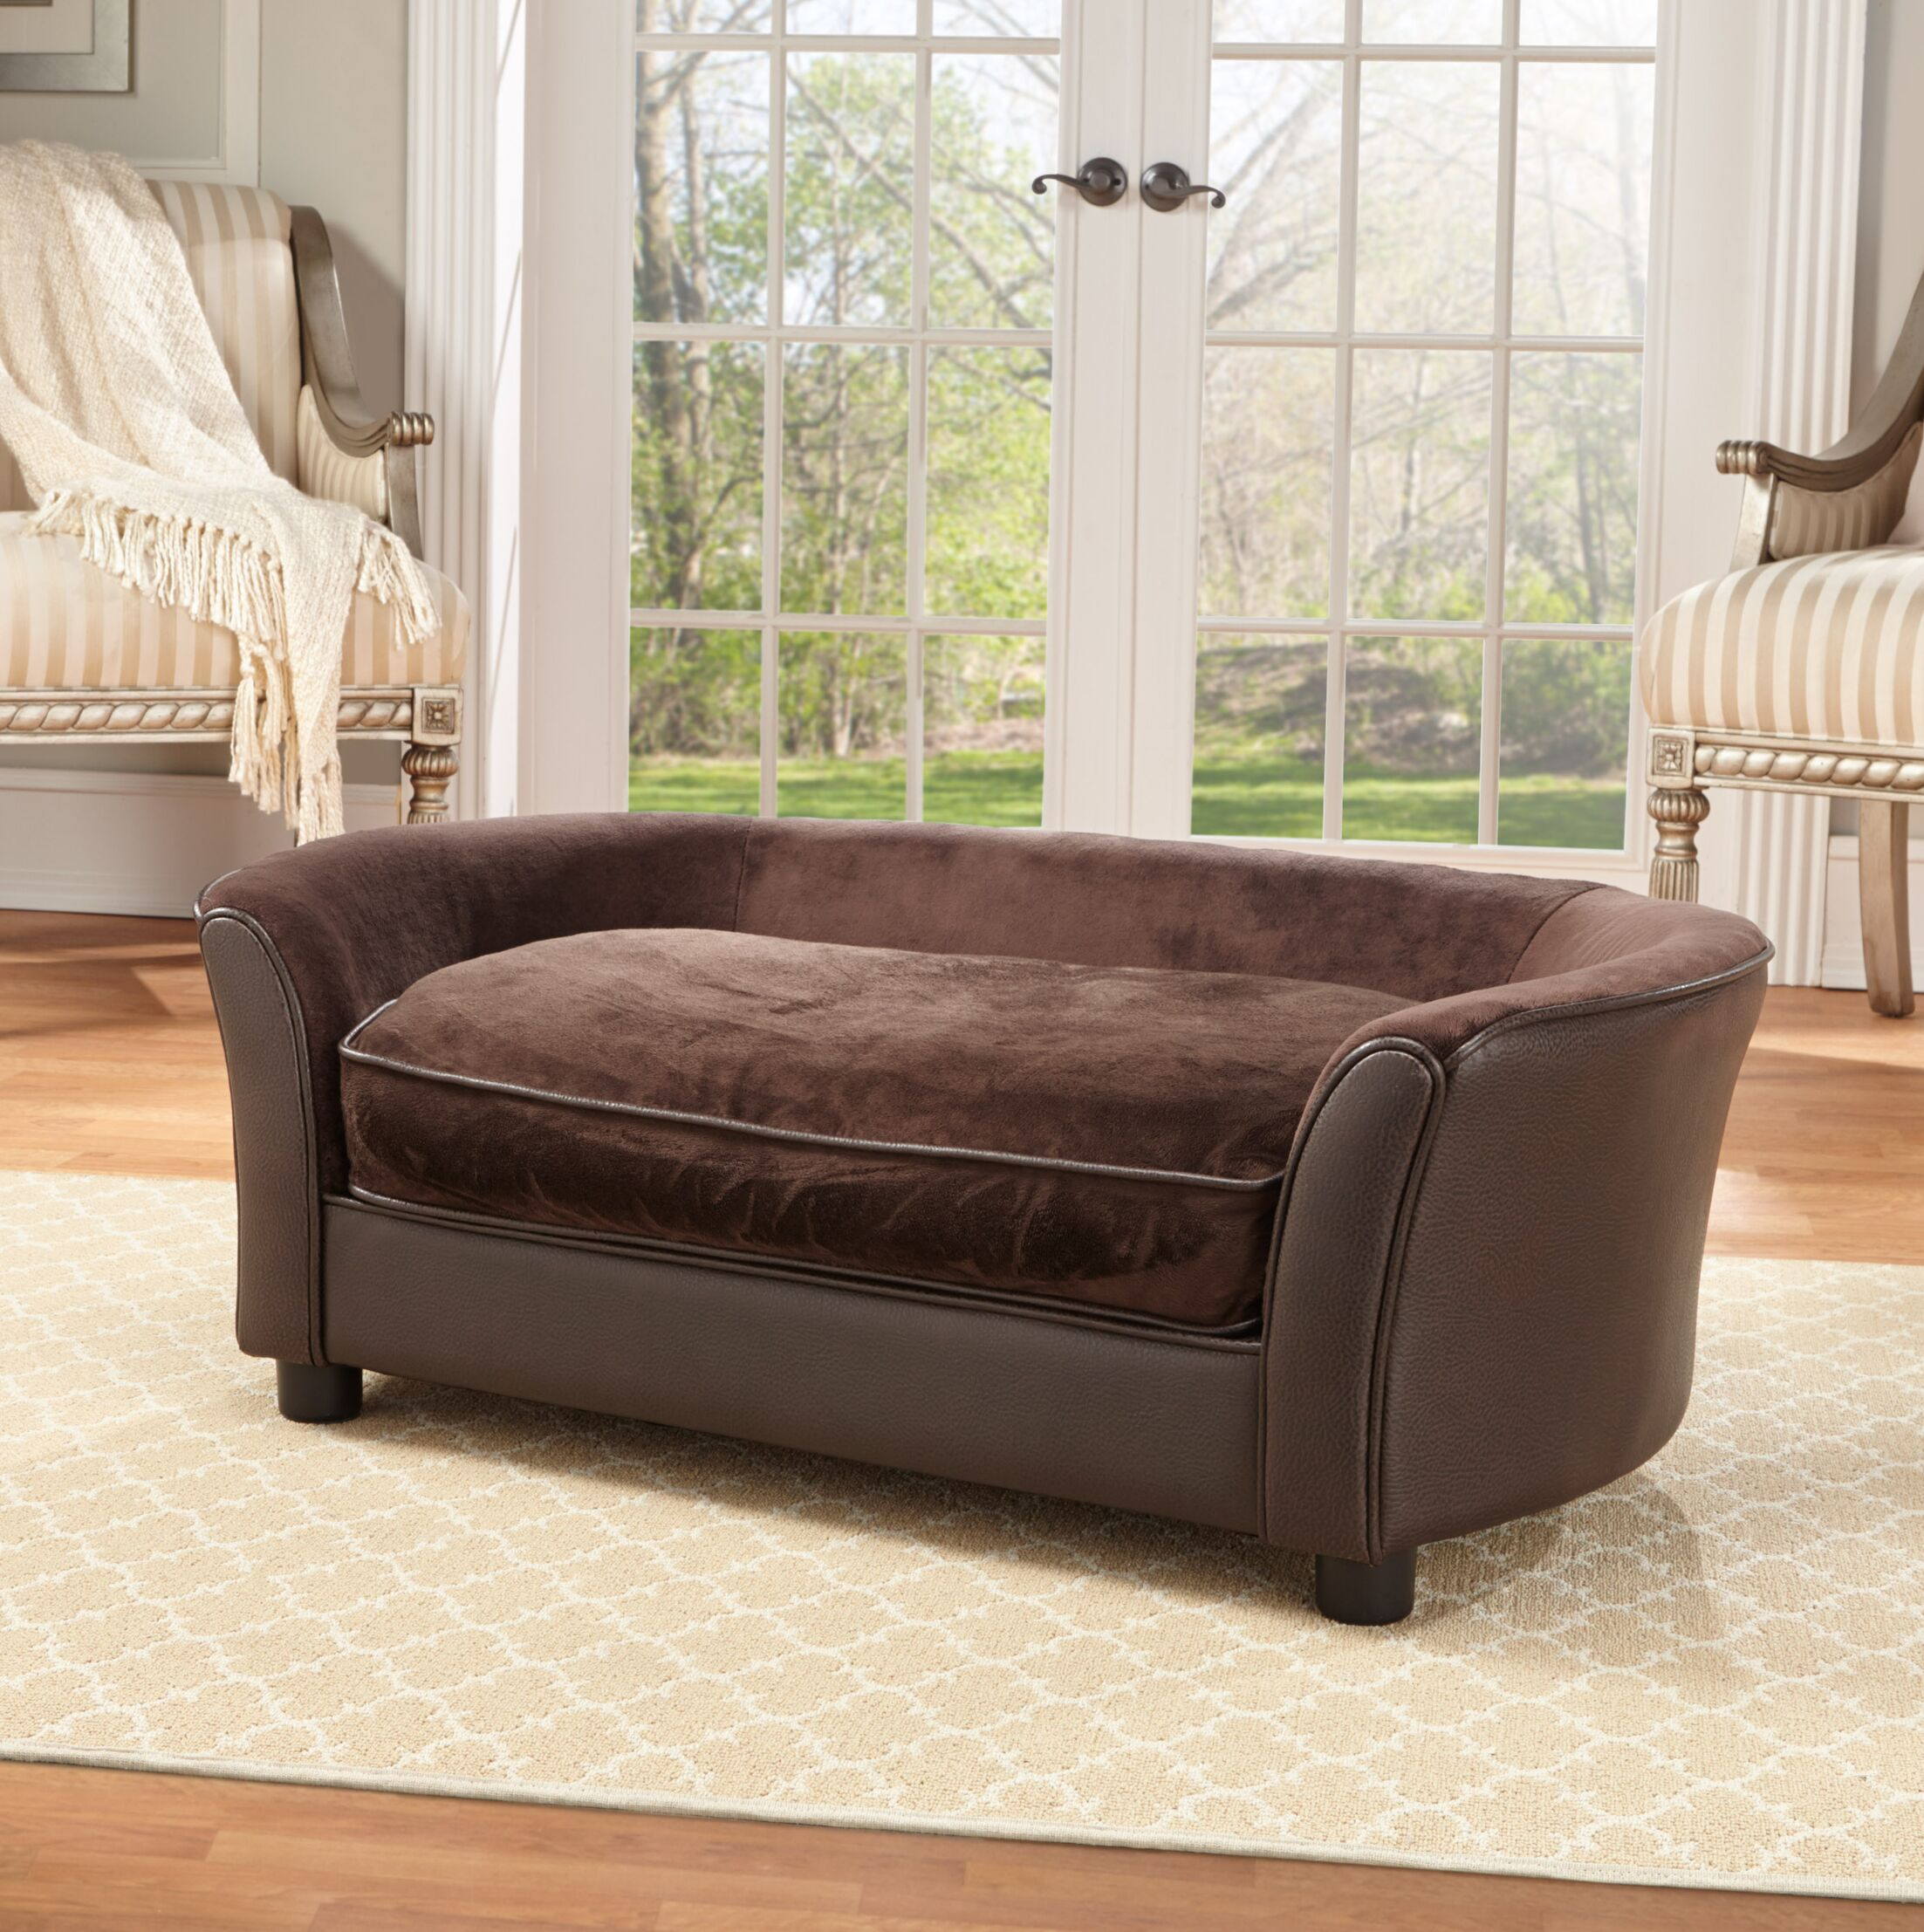 Cora Dog Sofa with Storage Pocket Color: Brown